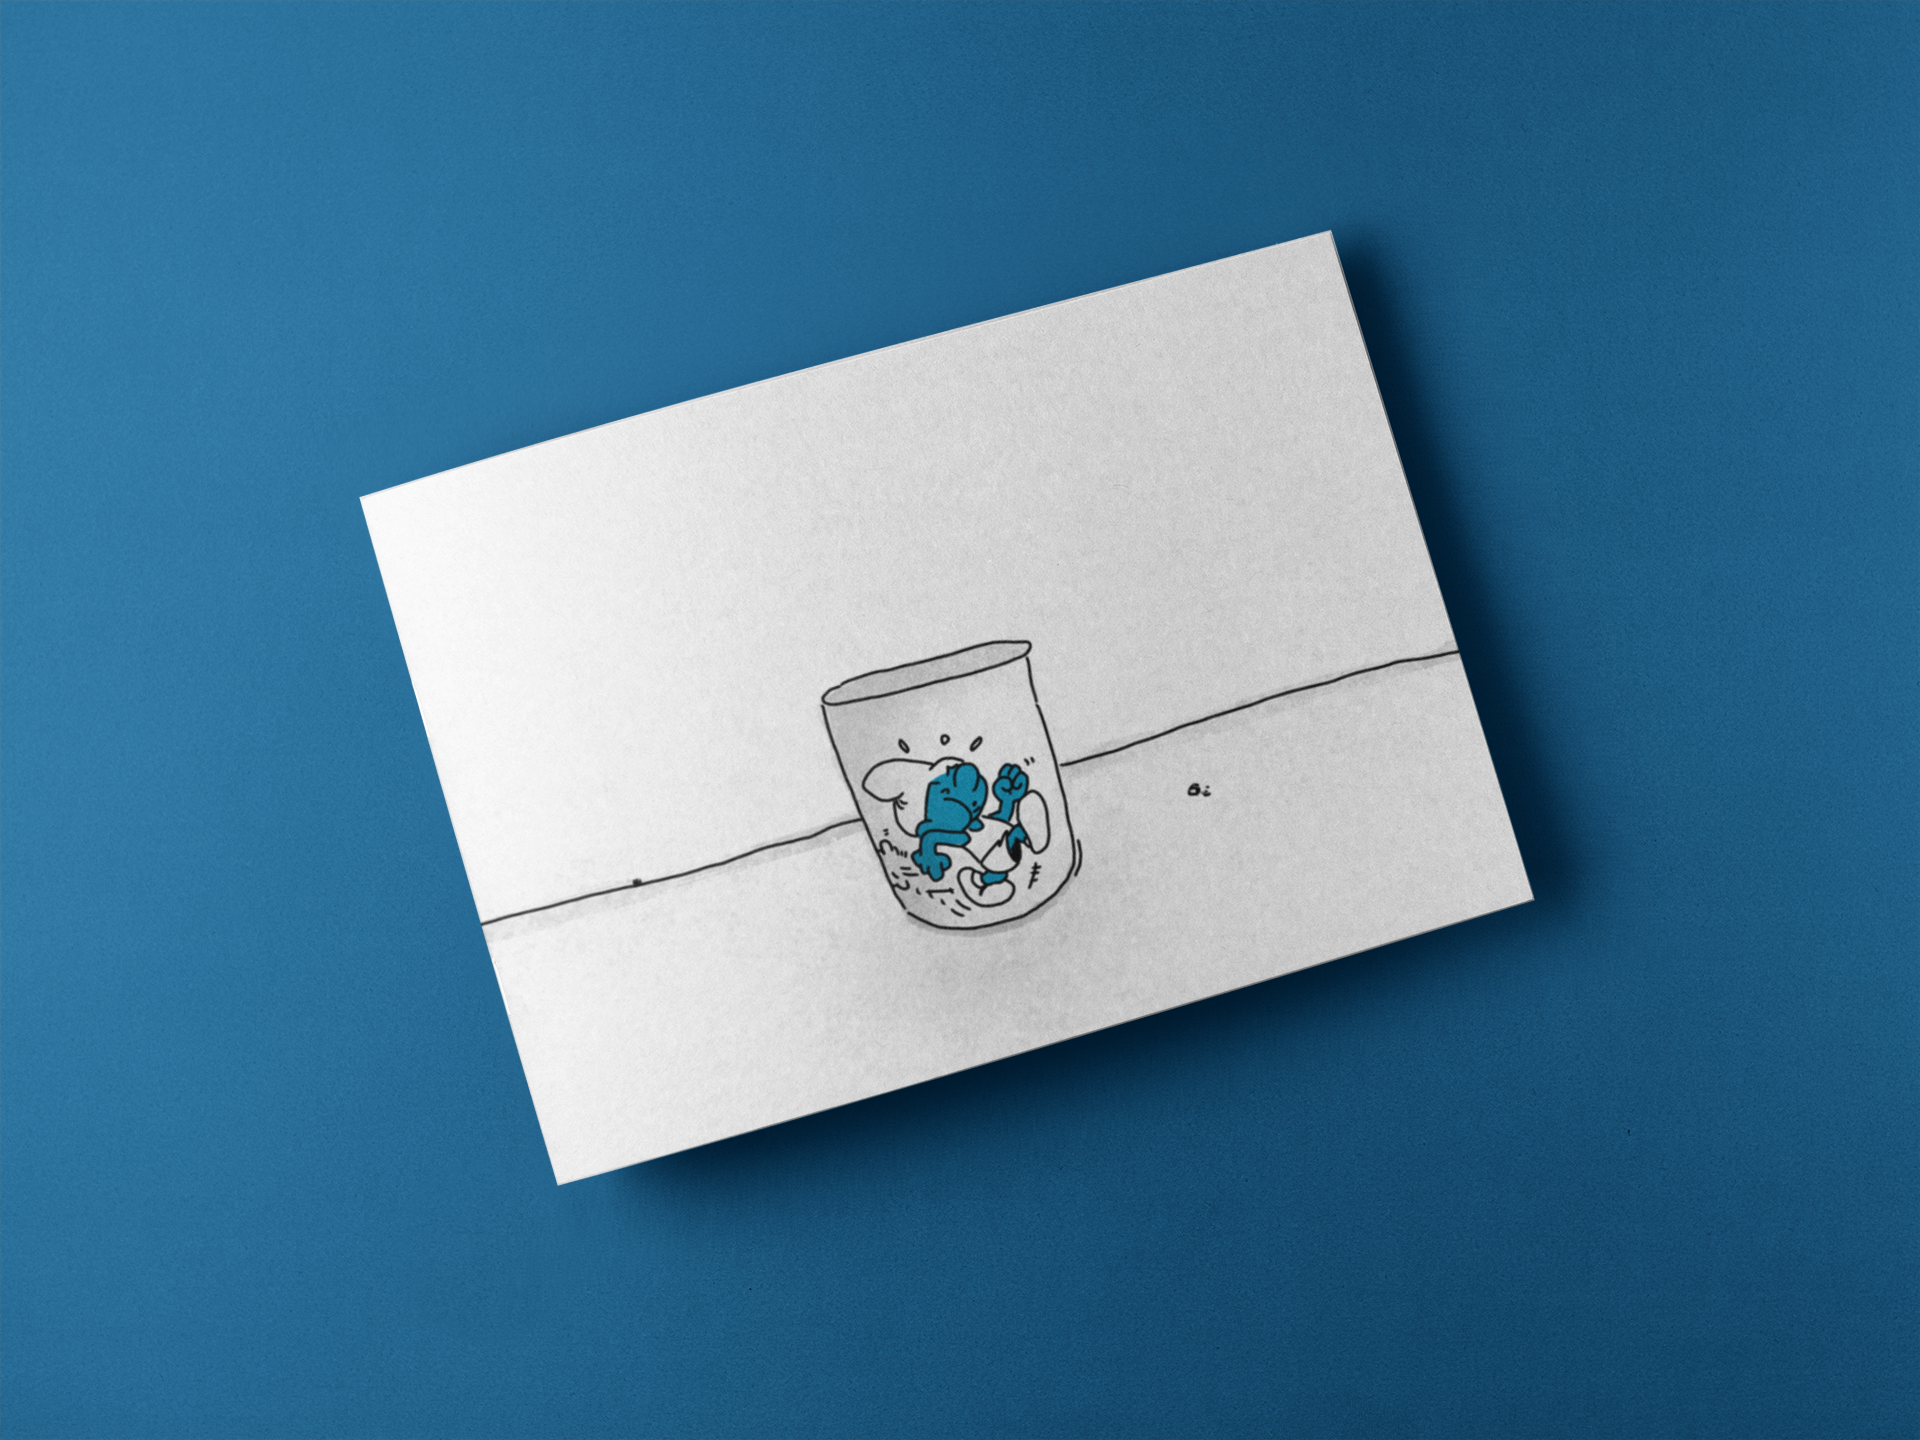 closed-booklet-mockup-lying-on-a-solid-color-surface-a15097.png